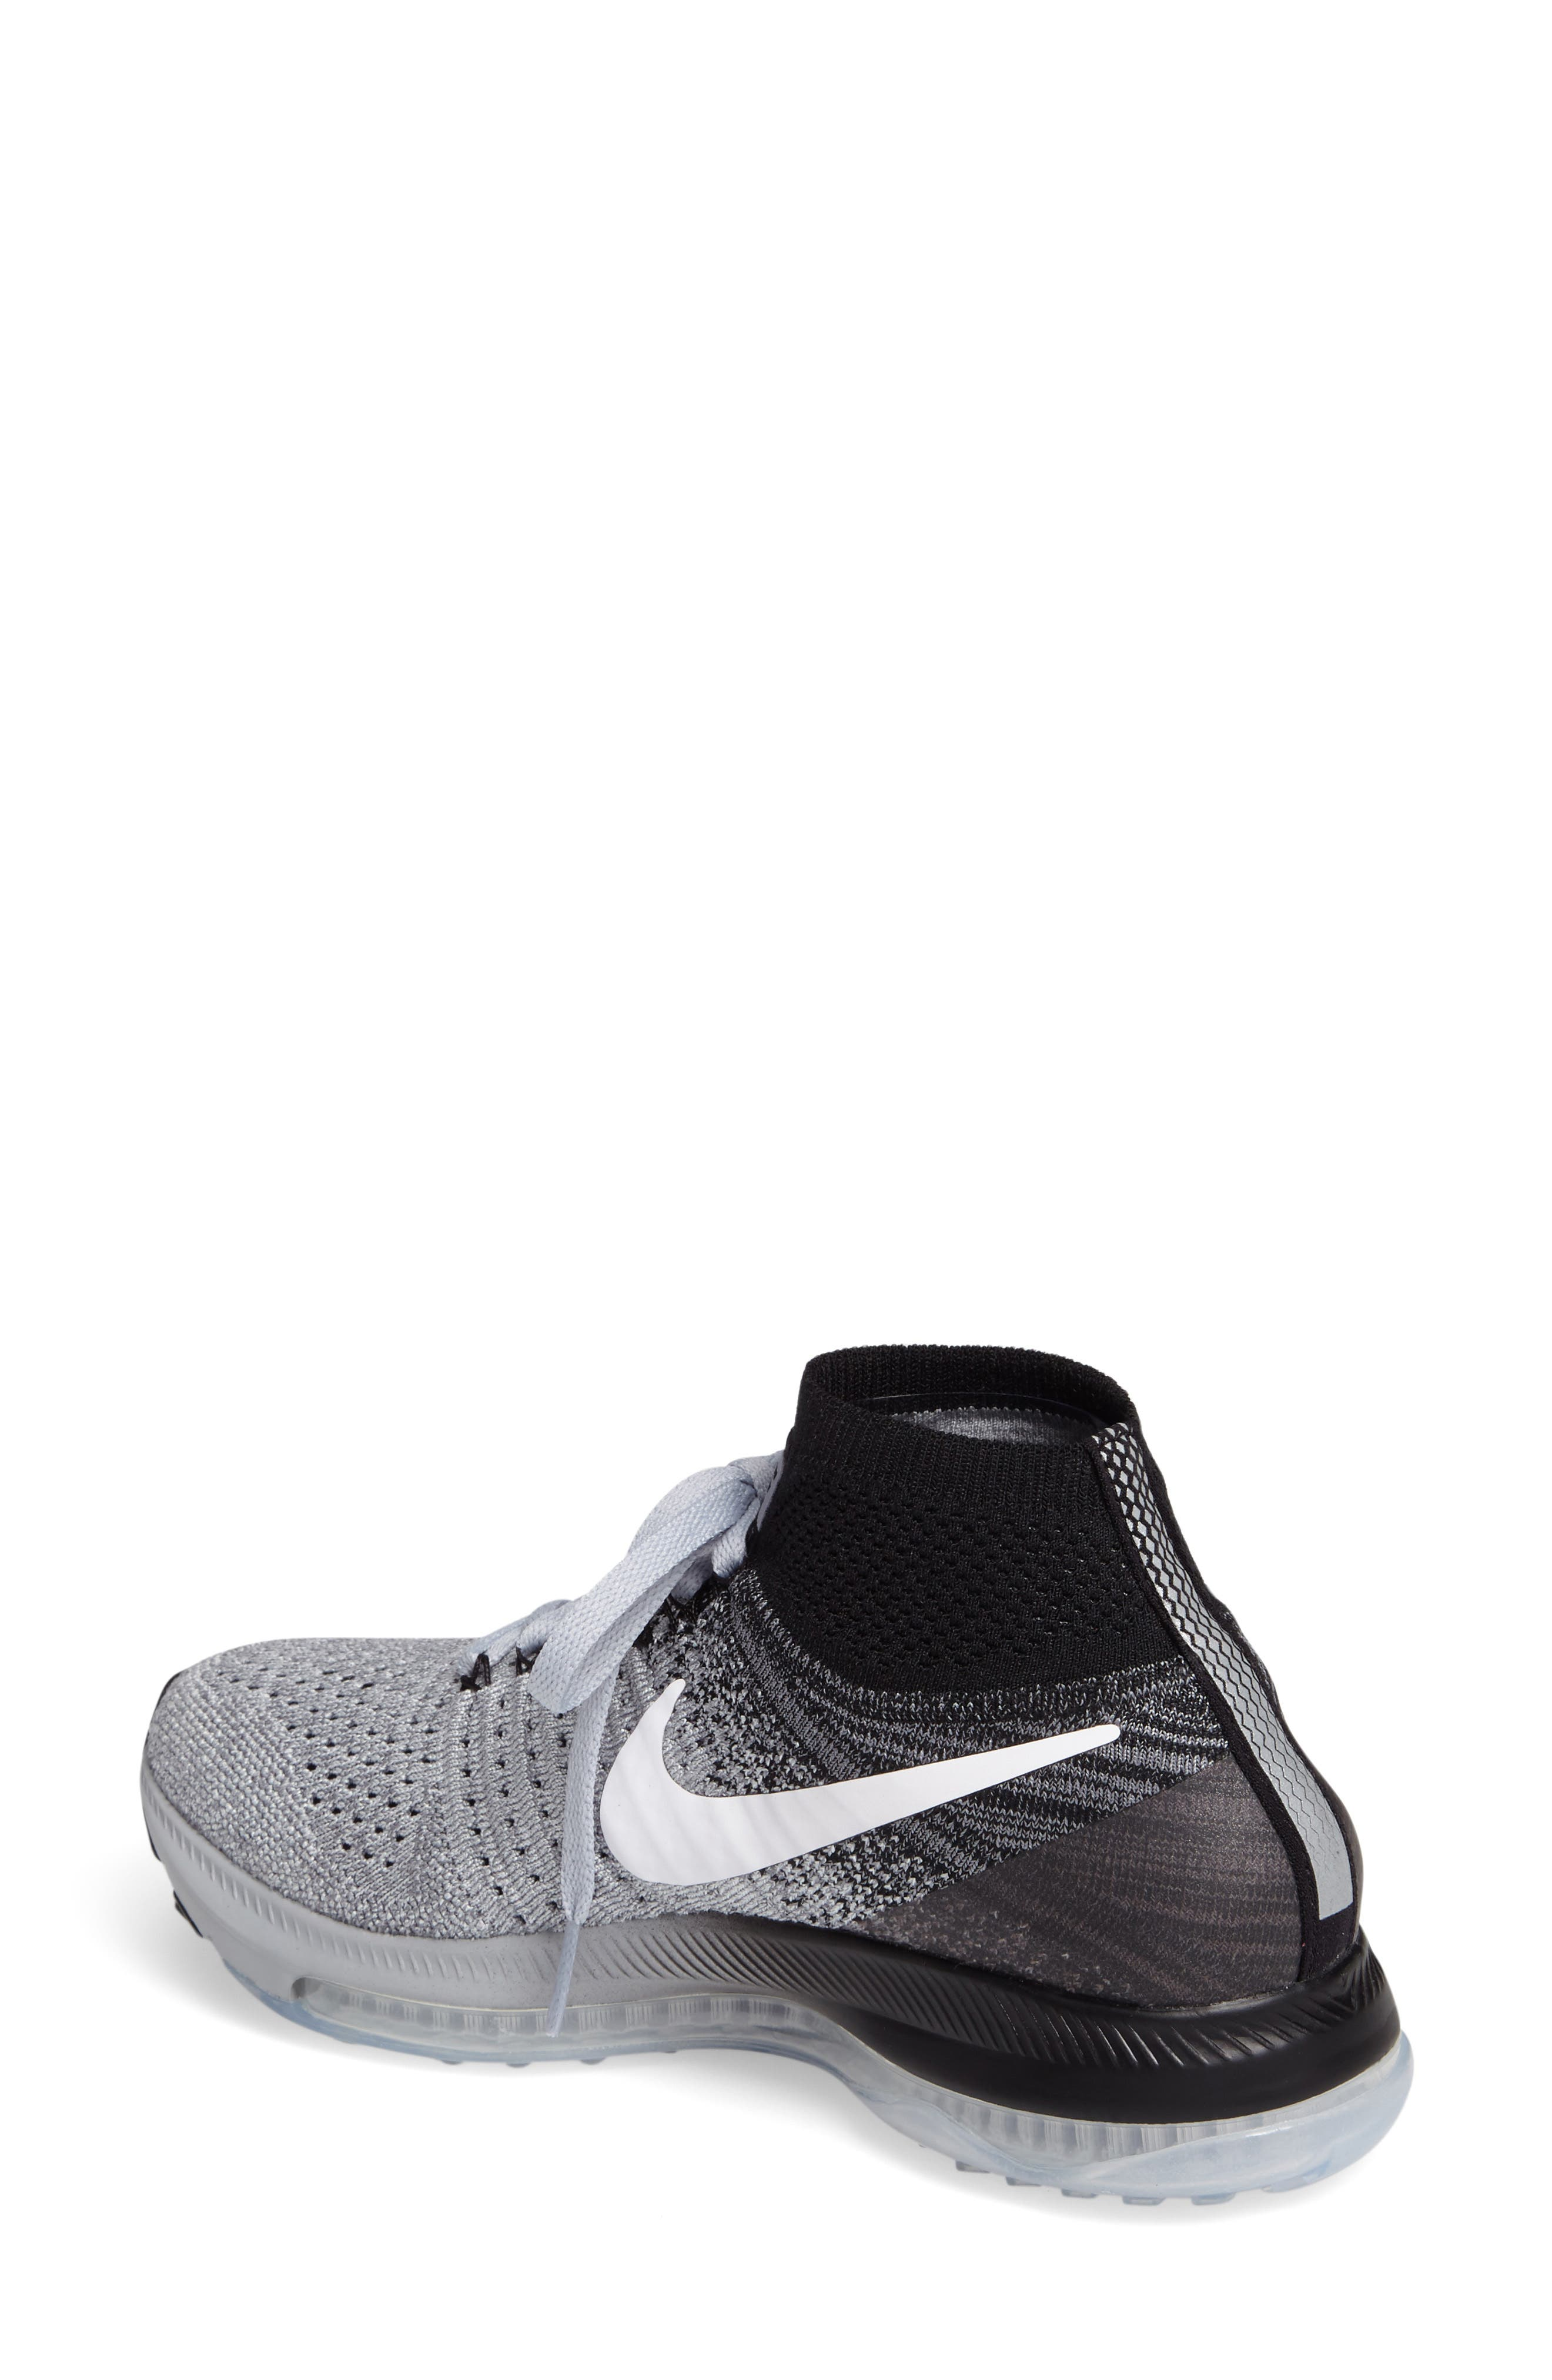 Air Zoom Pegasus All Out Flyknit Running Shoe,                             Alternate thumbnail 2, color,                             021